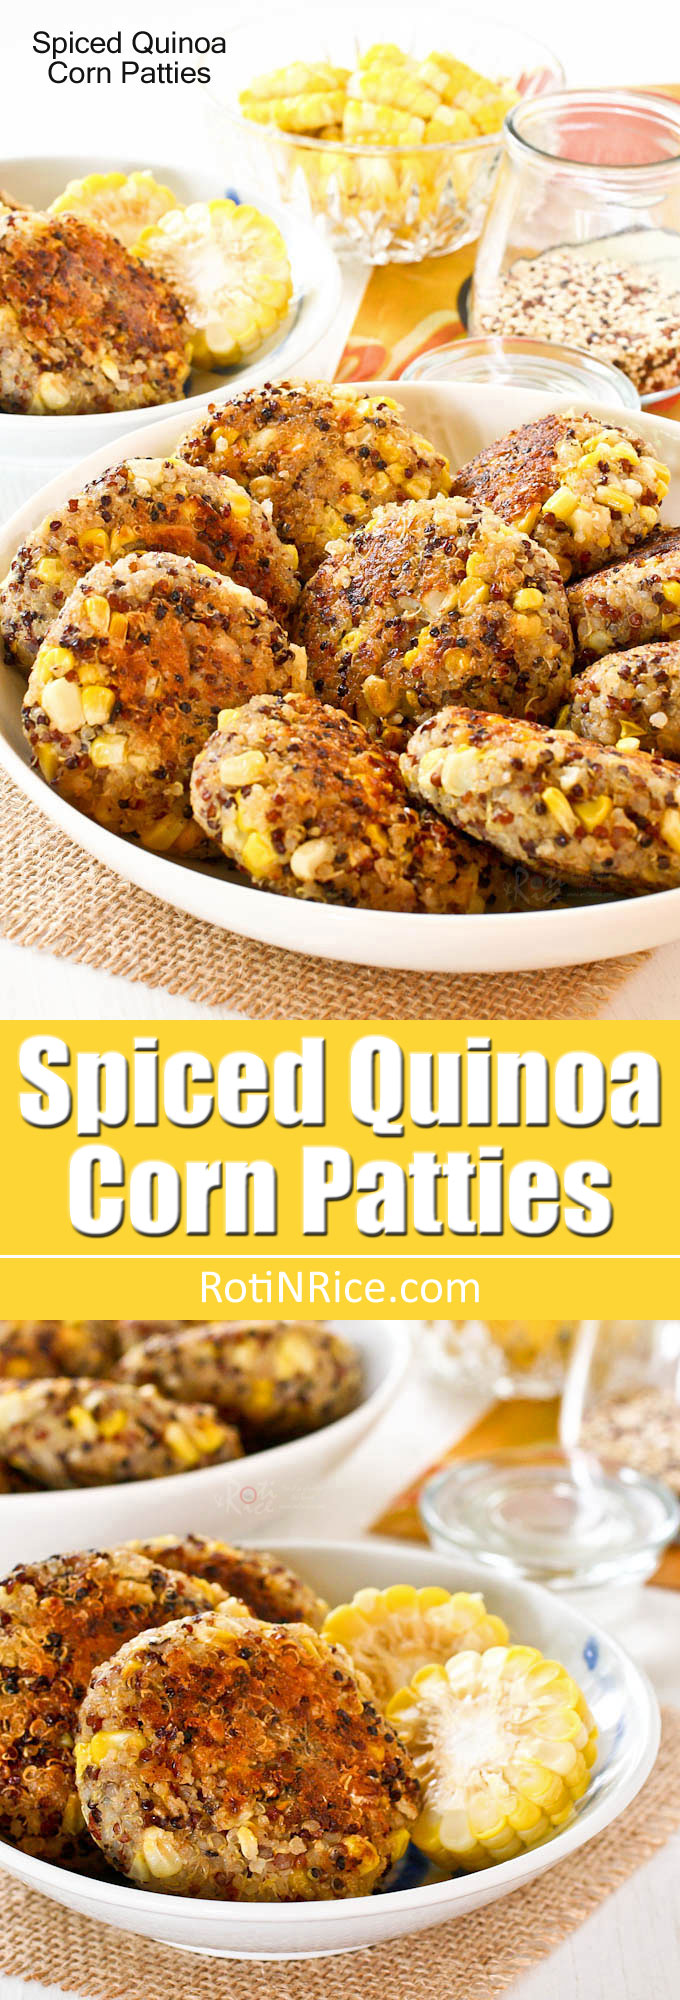 Tasty and fragrant Spiced Quinoa Corn Patties flavored with garam masala. Great as an appetizer, snack or side dish. Also works beautifully in the lunchbox. | RotiNRice.com